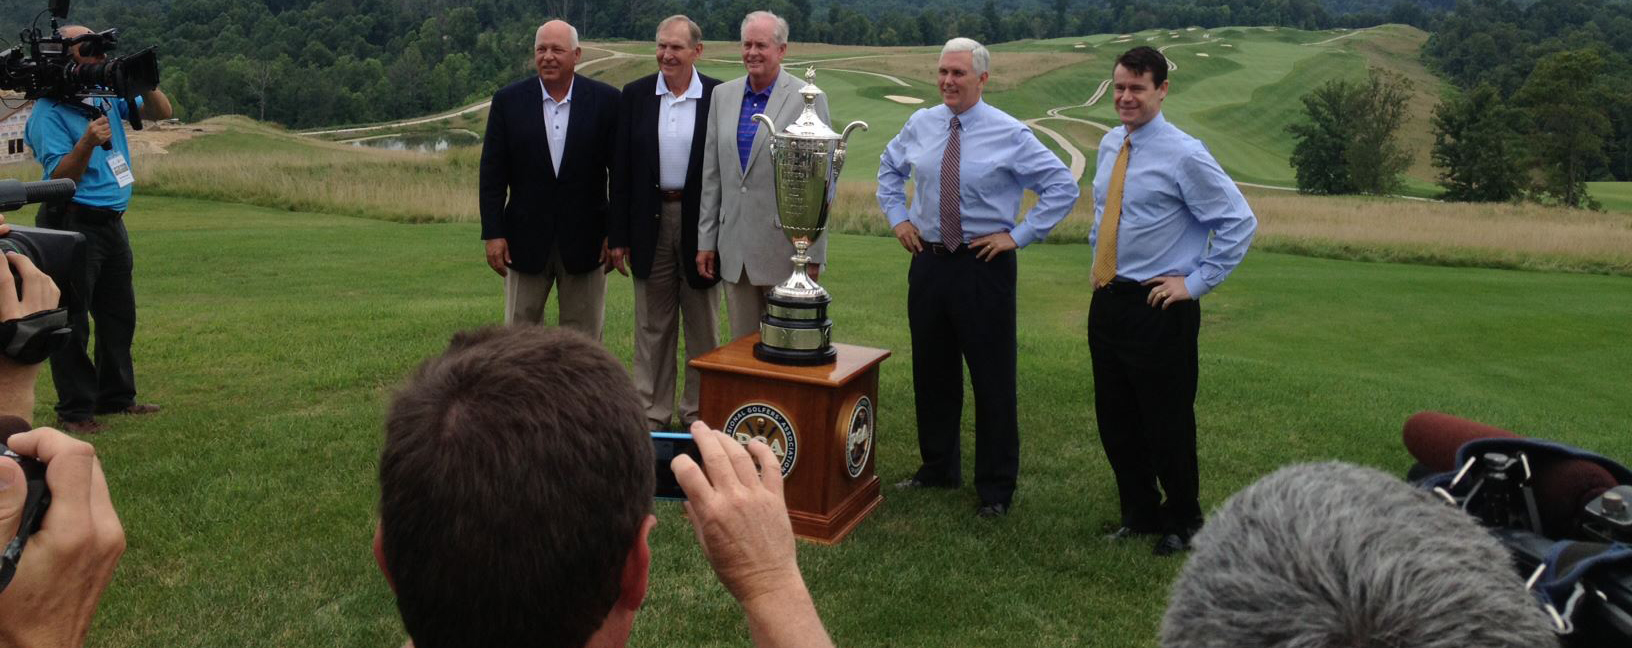 French Lick Resort will host the 2015 Senior PGA Champsionship